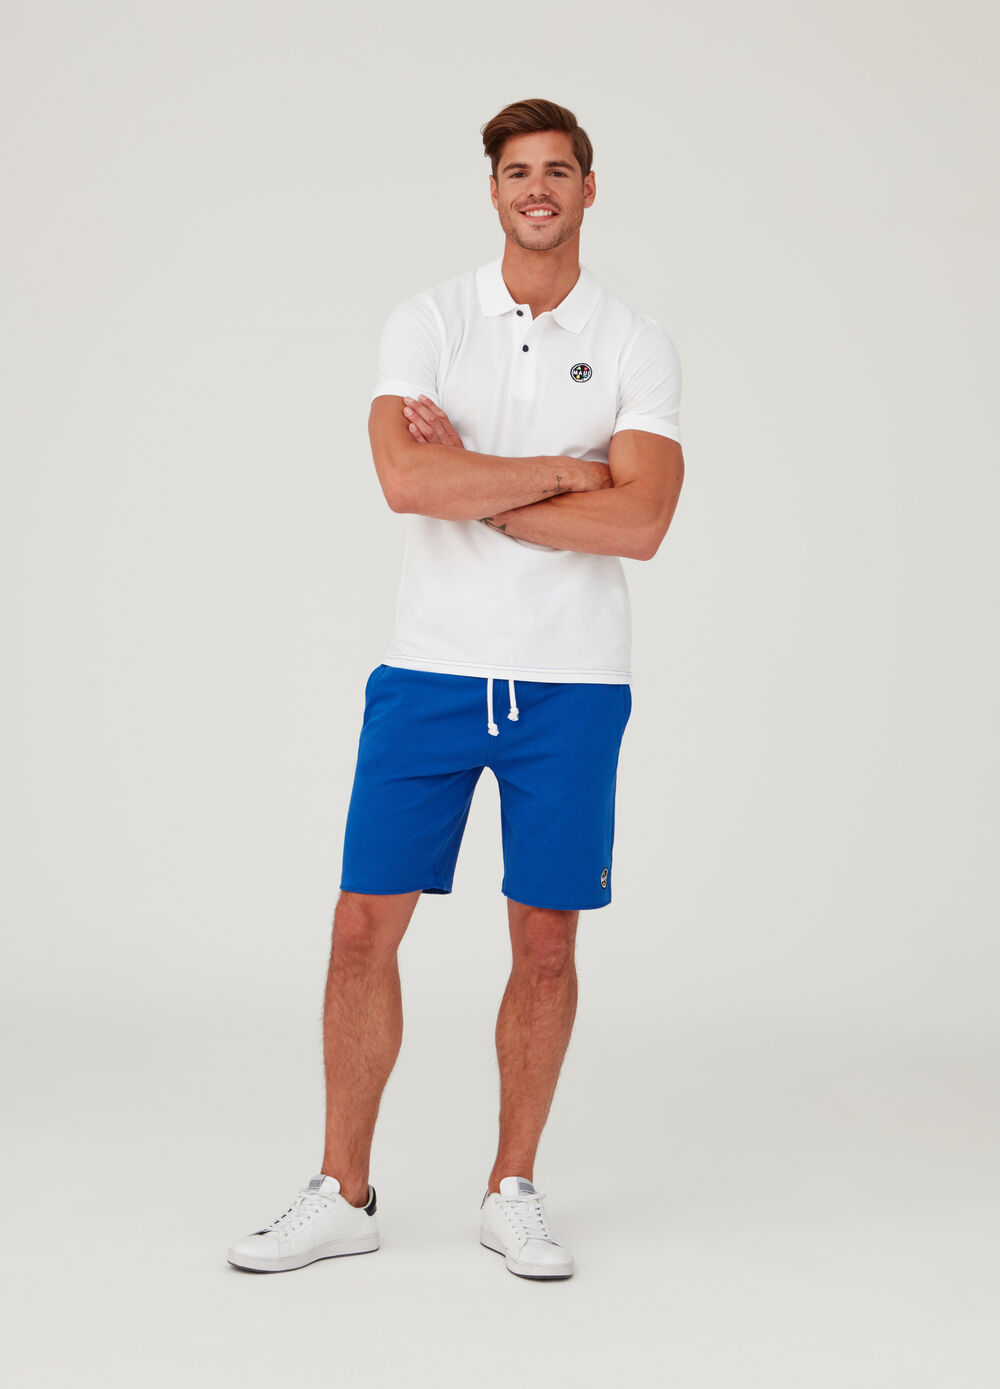 100% cotton shorts by Maui and Sons